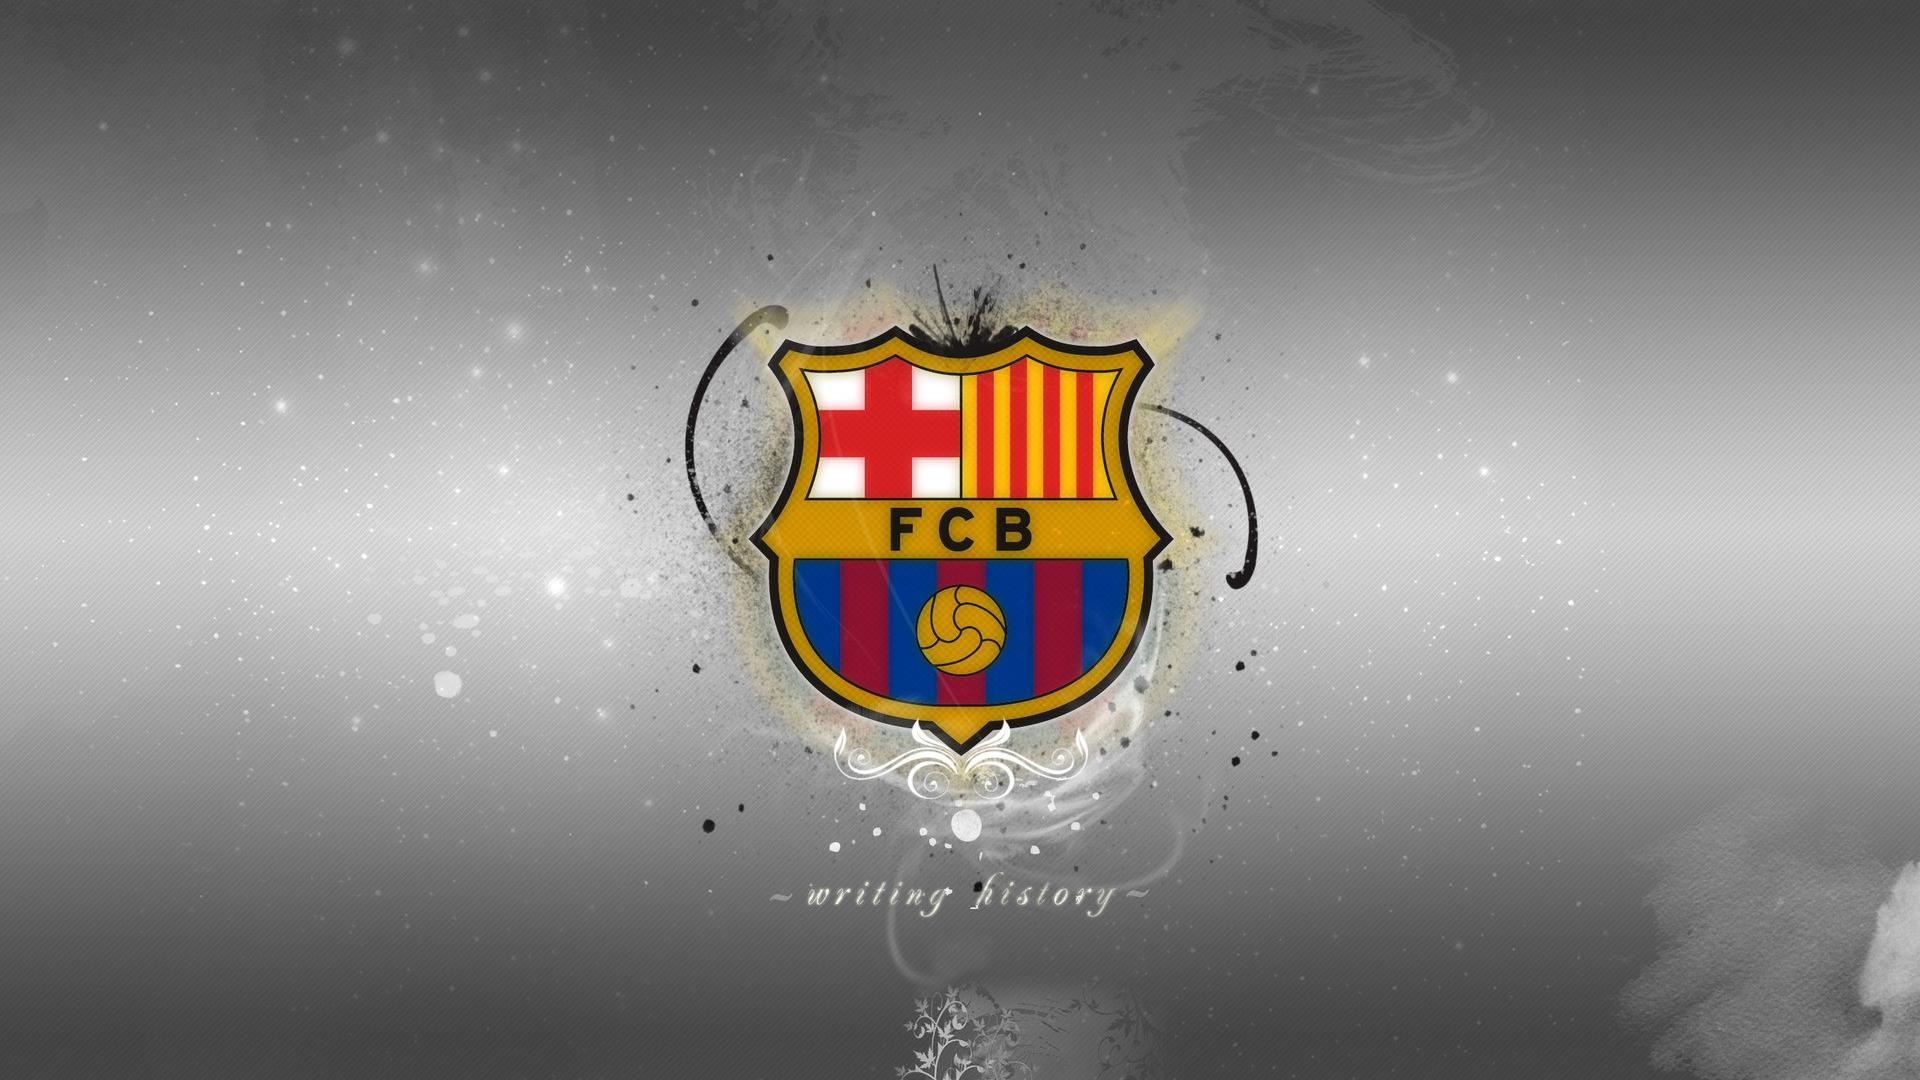 Barcelona HD Wallpapers for Desktop, iPhone, iPad, and Android